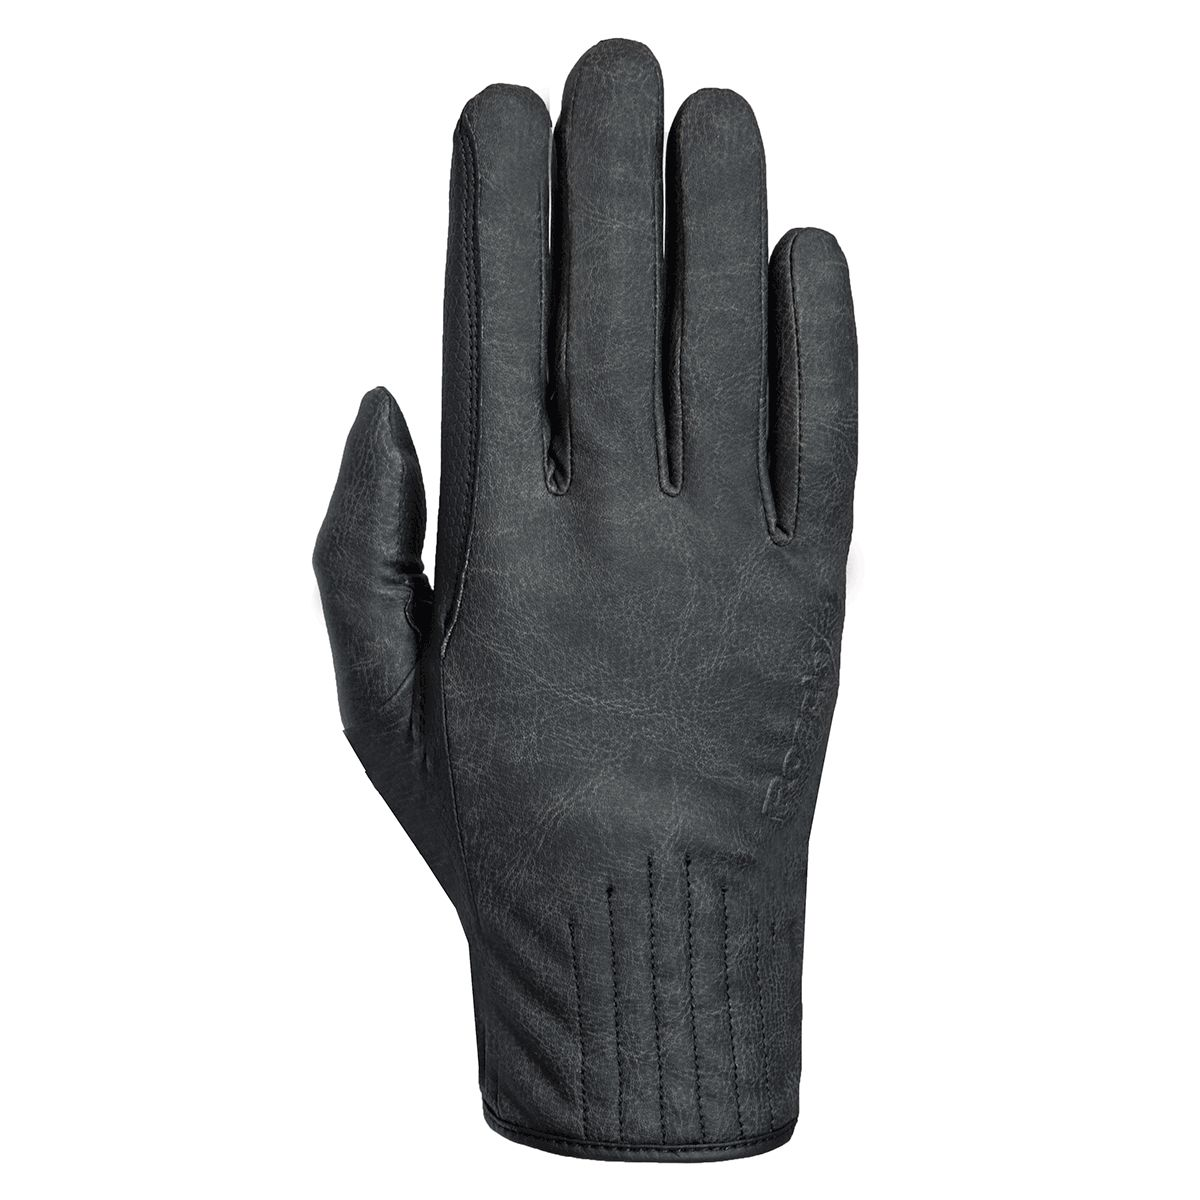 KIDO Winter Cycling Gloves